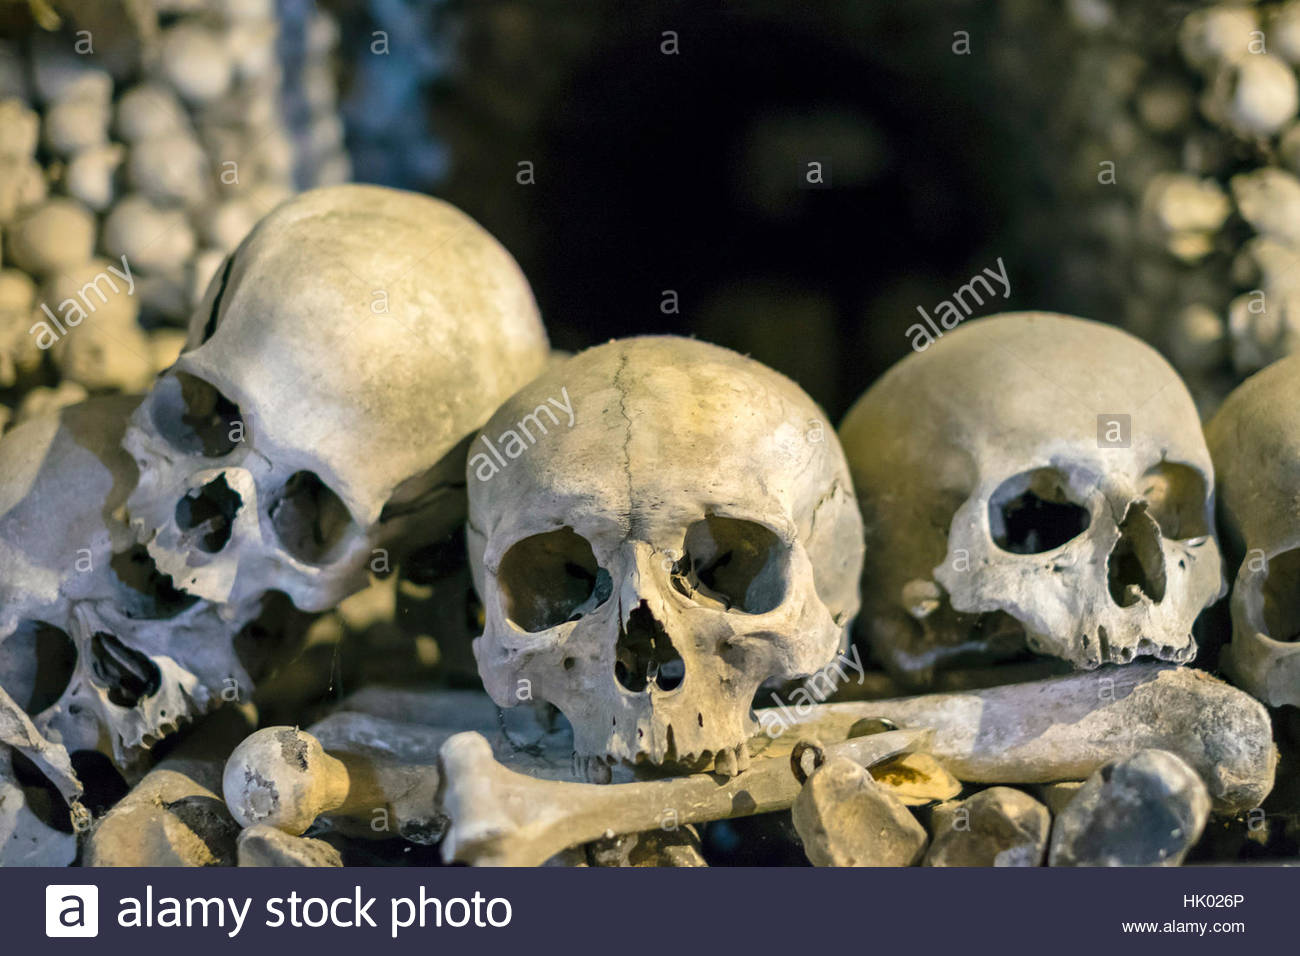 Czech Republic, Central Bohemian Region, Kutná Hora. Sedlec Ossuary (Czech: Kostnice v Sedlci), bone church. - Stock Image